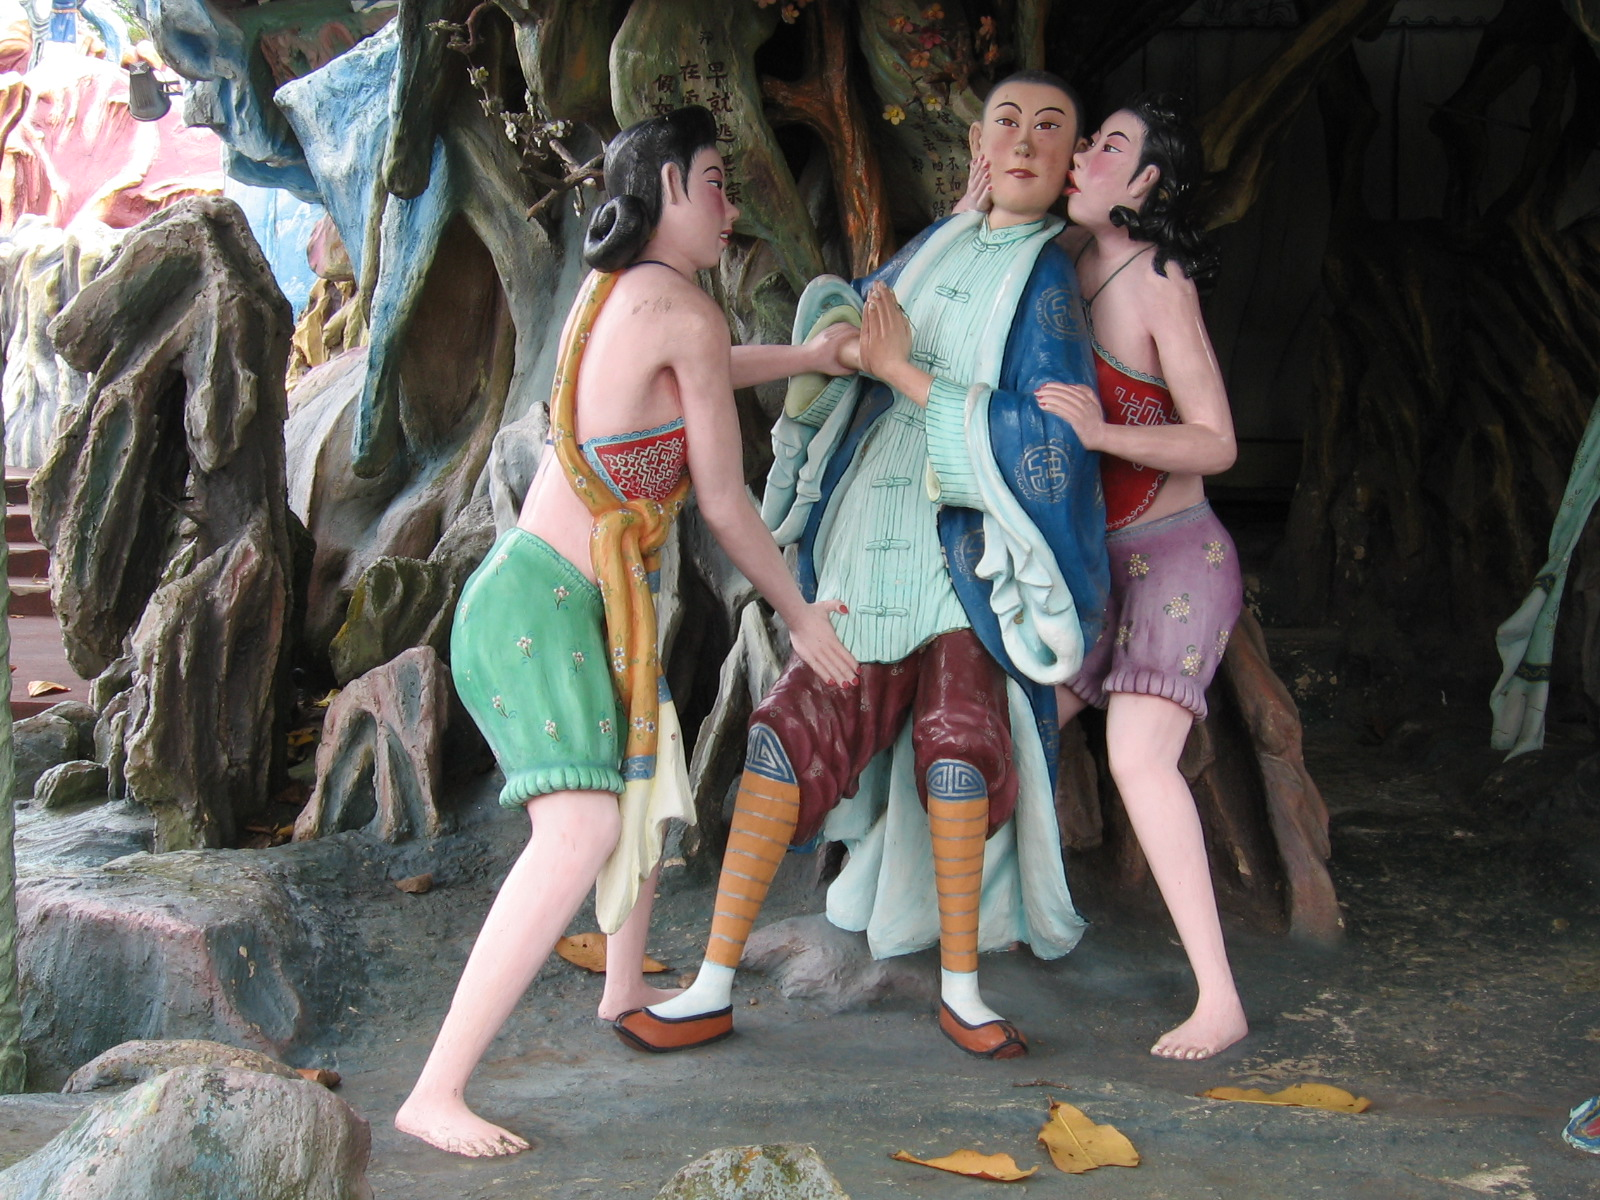 File:Haw Par Villa 30, Nov 06.JPG - Wikipedia, the free encyclopedia